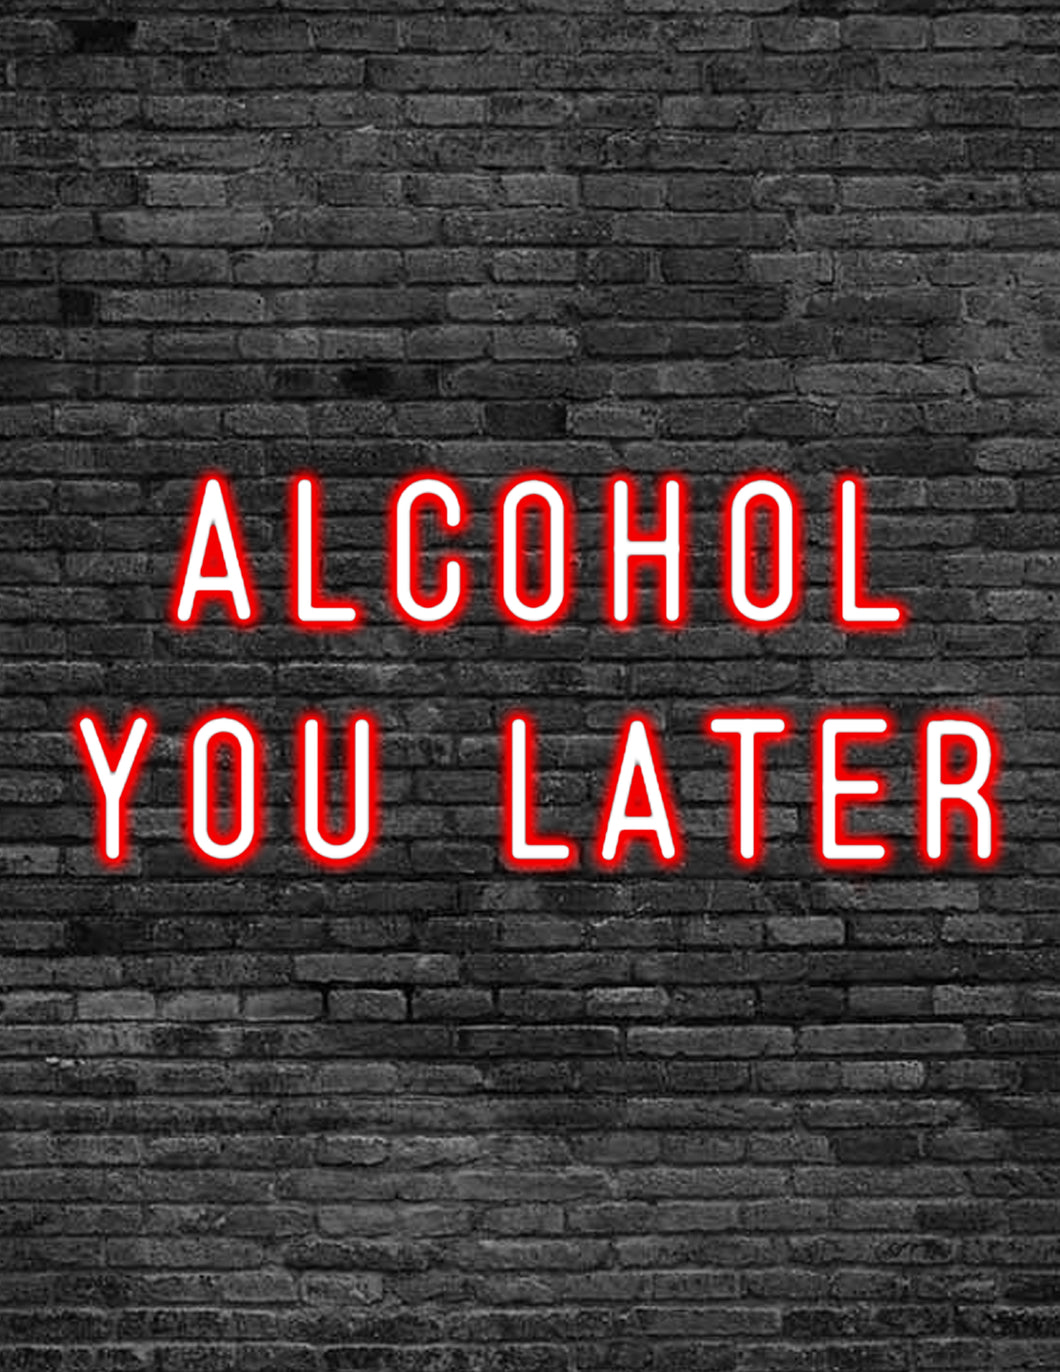 'ALCOHOL YOU LATER' Neon Sign